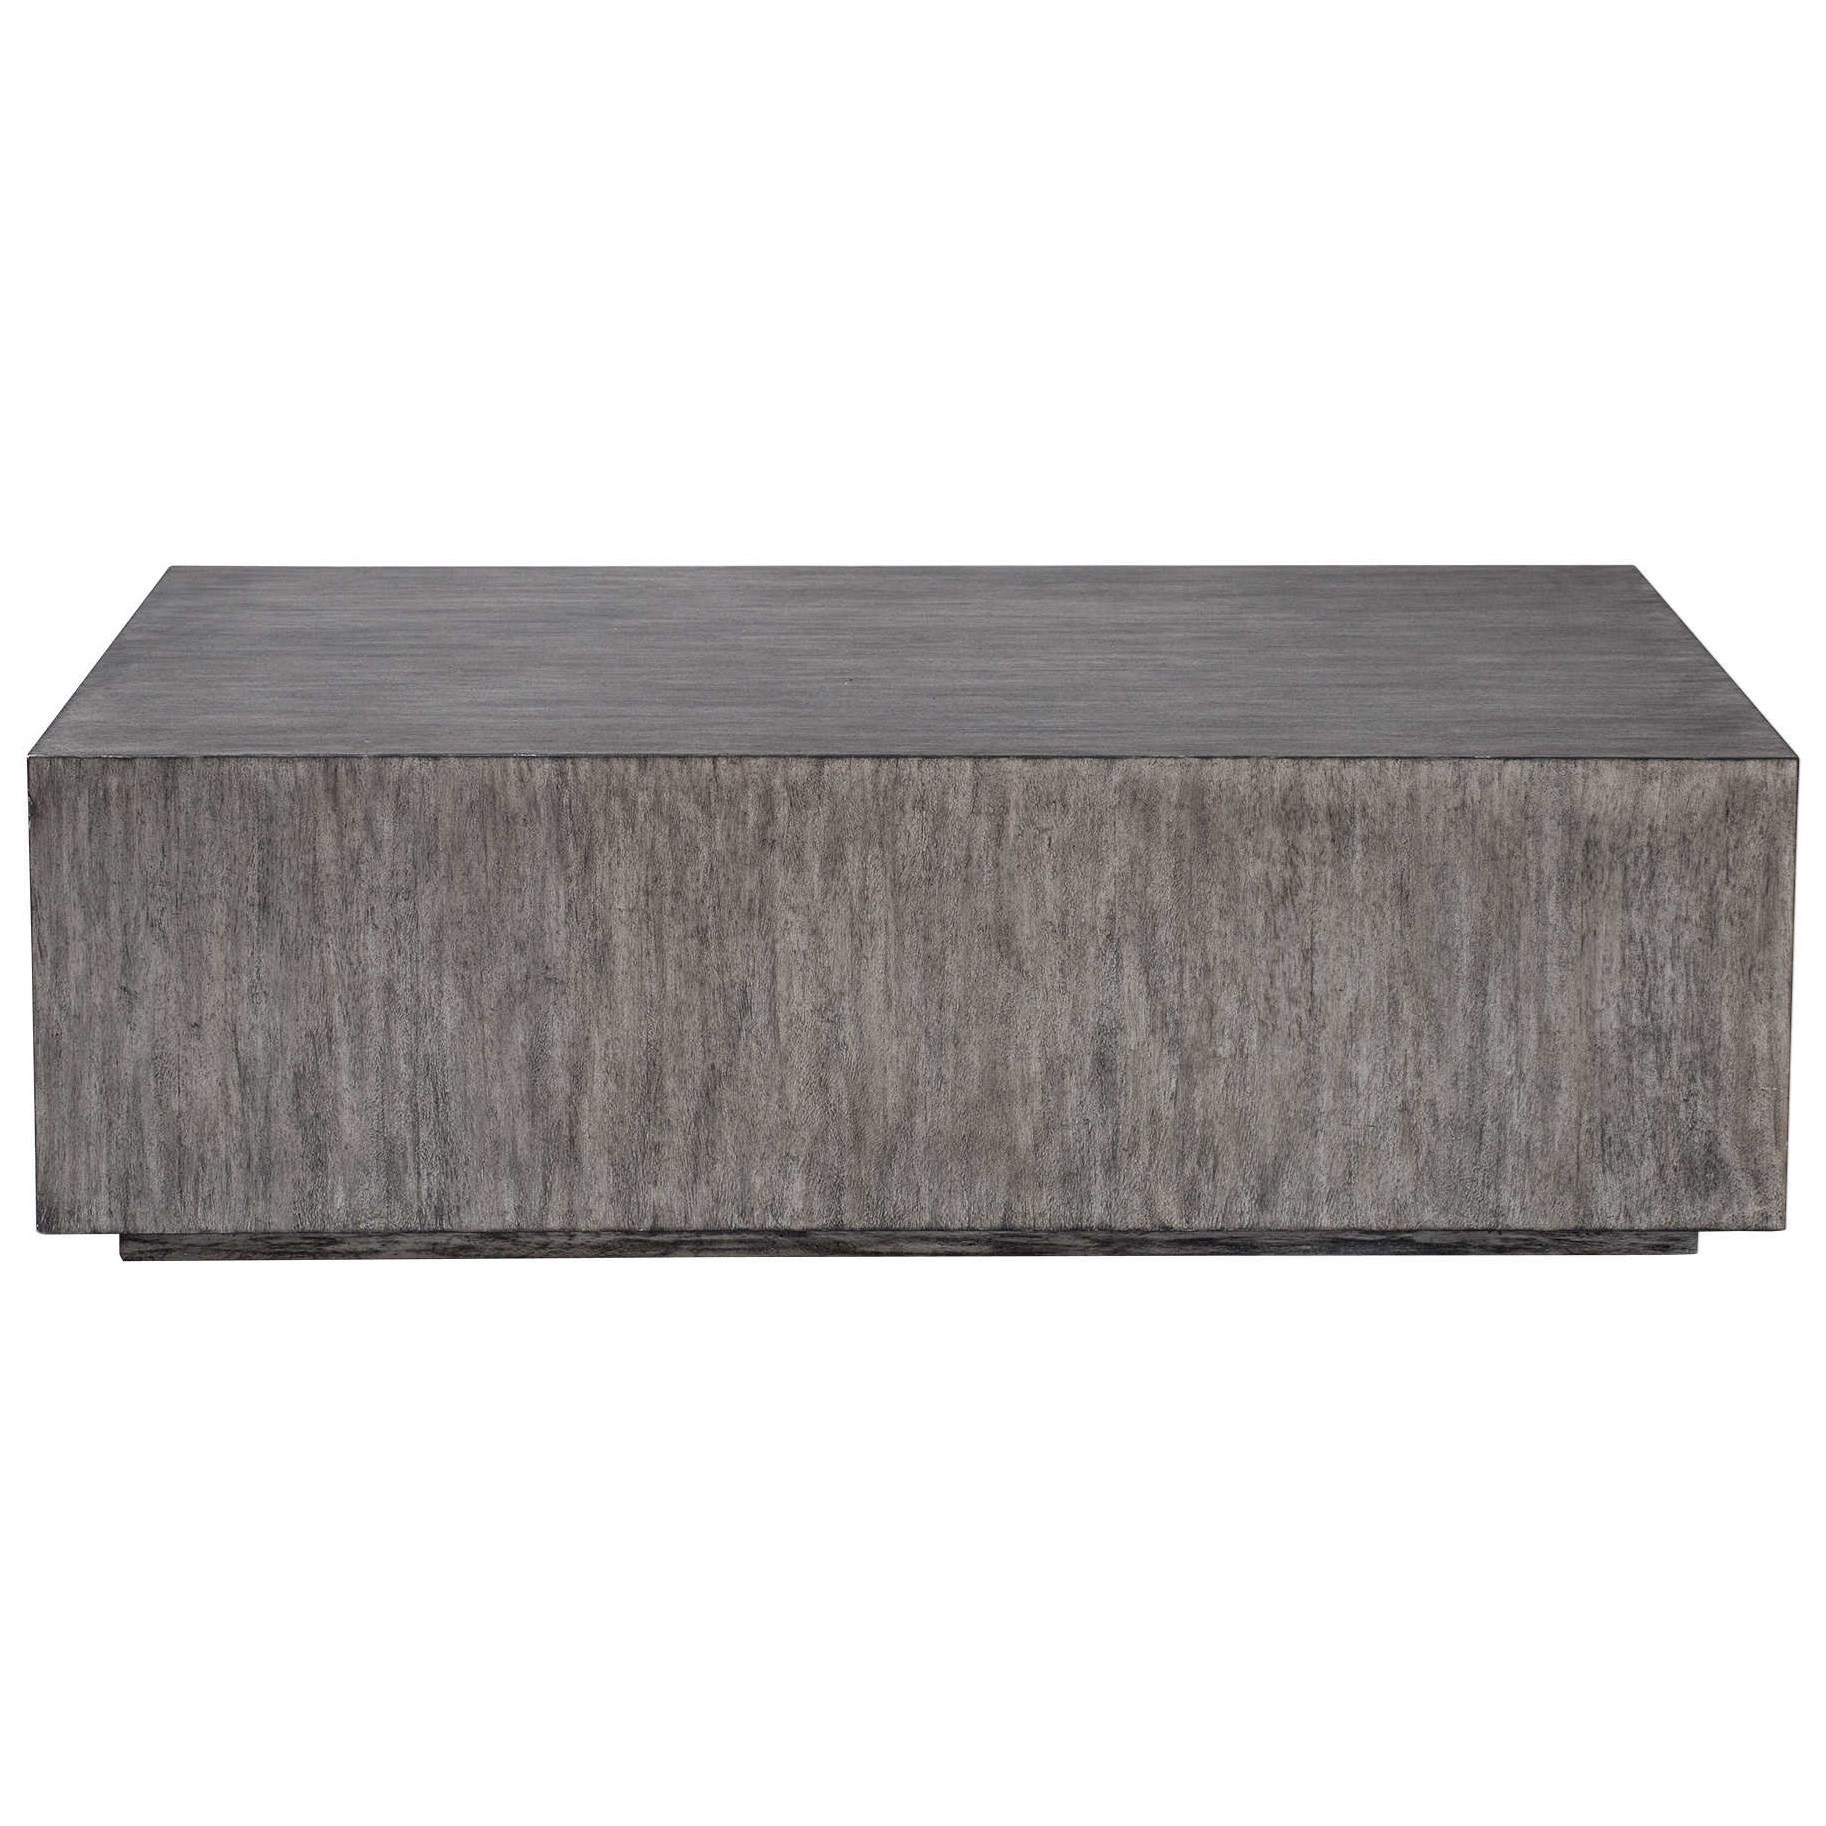 Accent Furniture - Occasional Tables Kareem Modern Gray Coffee Table by Uttermost at Dunk & Bright Furniture